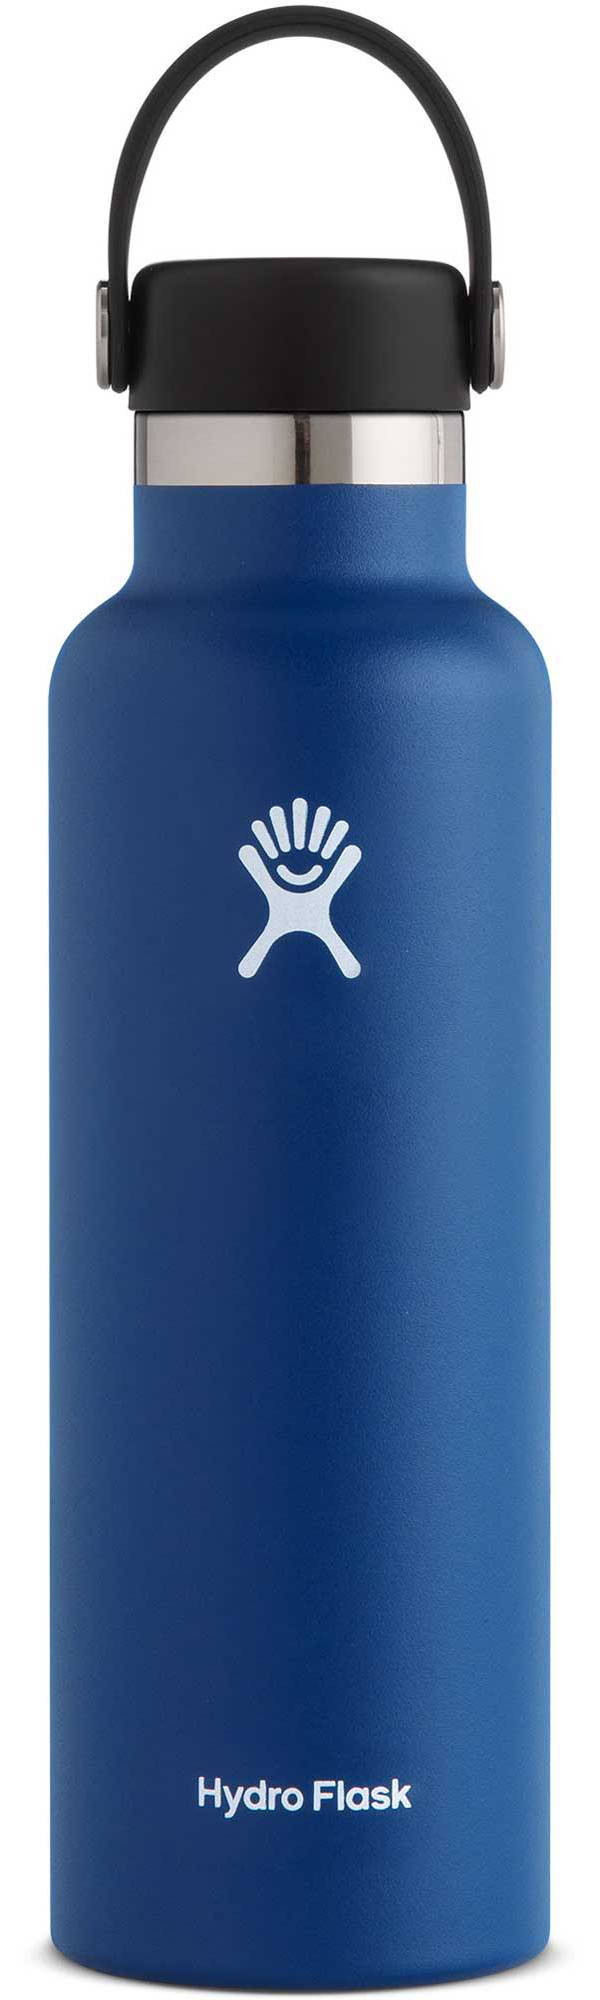 Hydro Flask Standard Mouth 21 oz. Bottle with Flex Cap product image